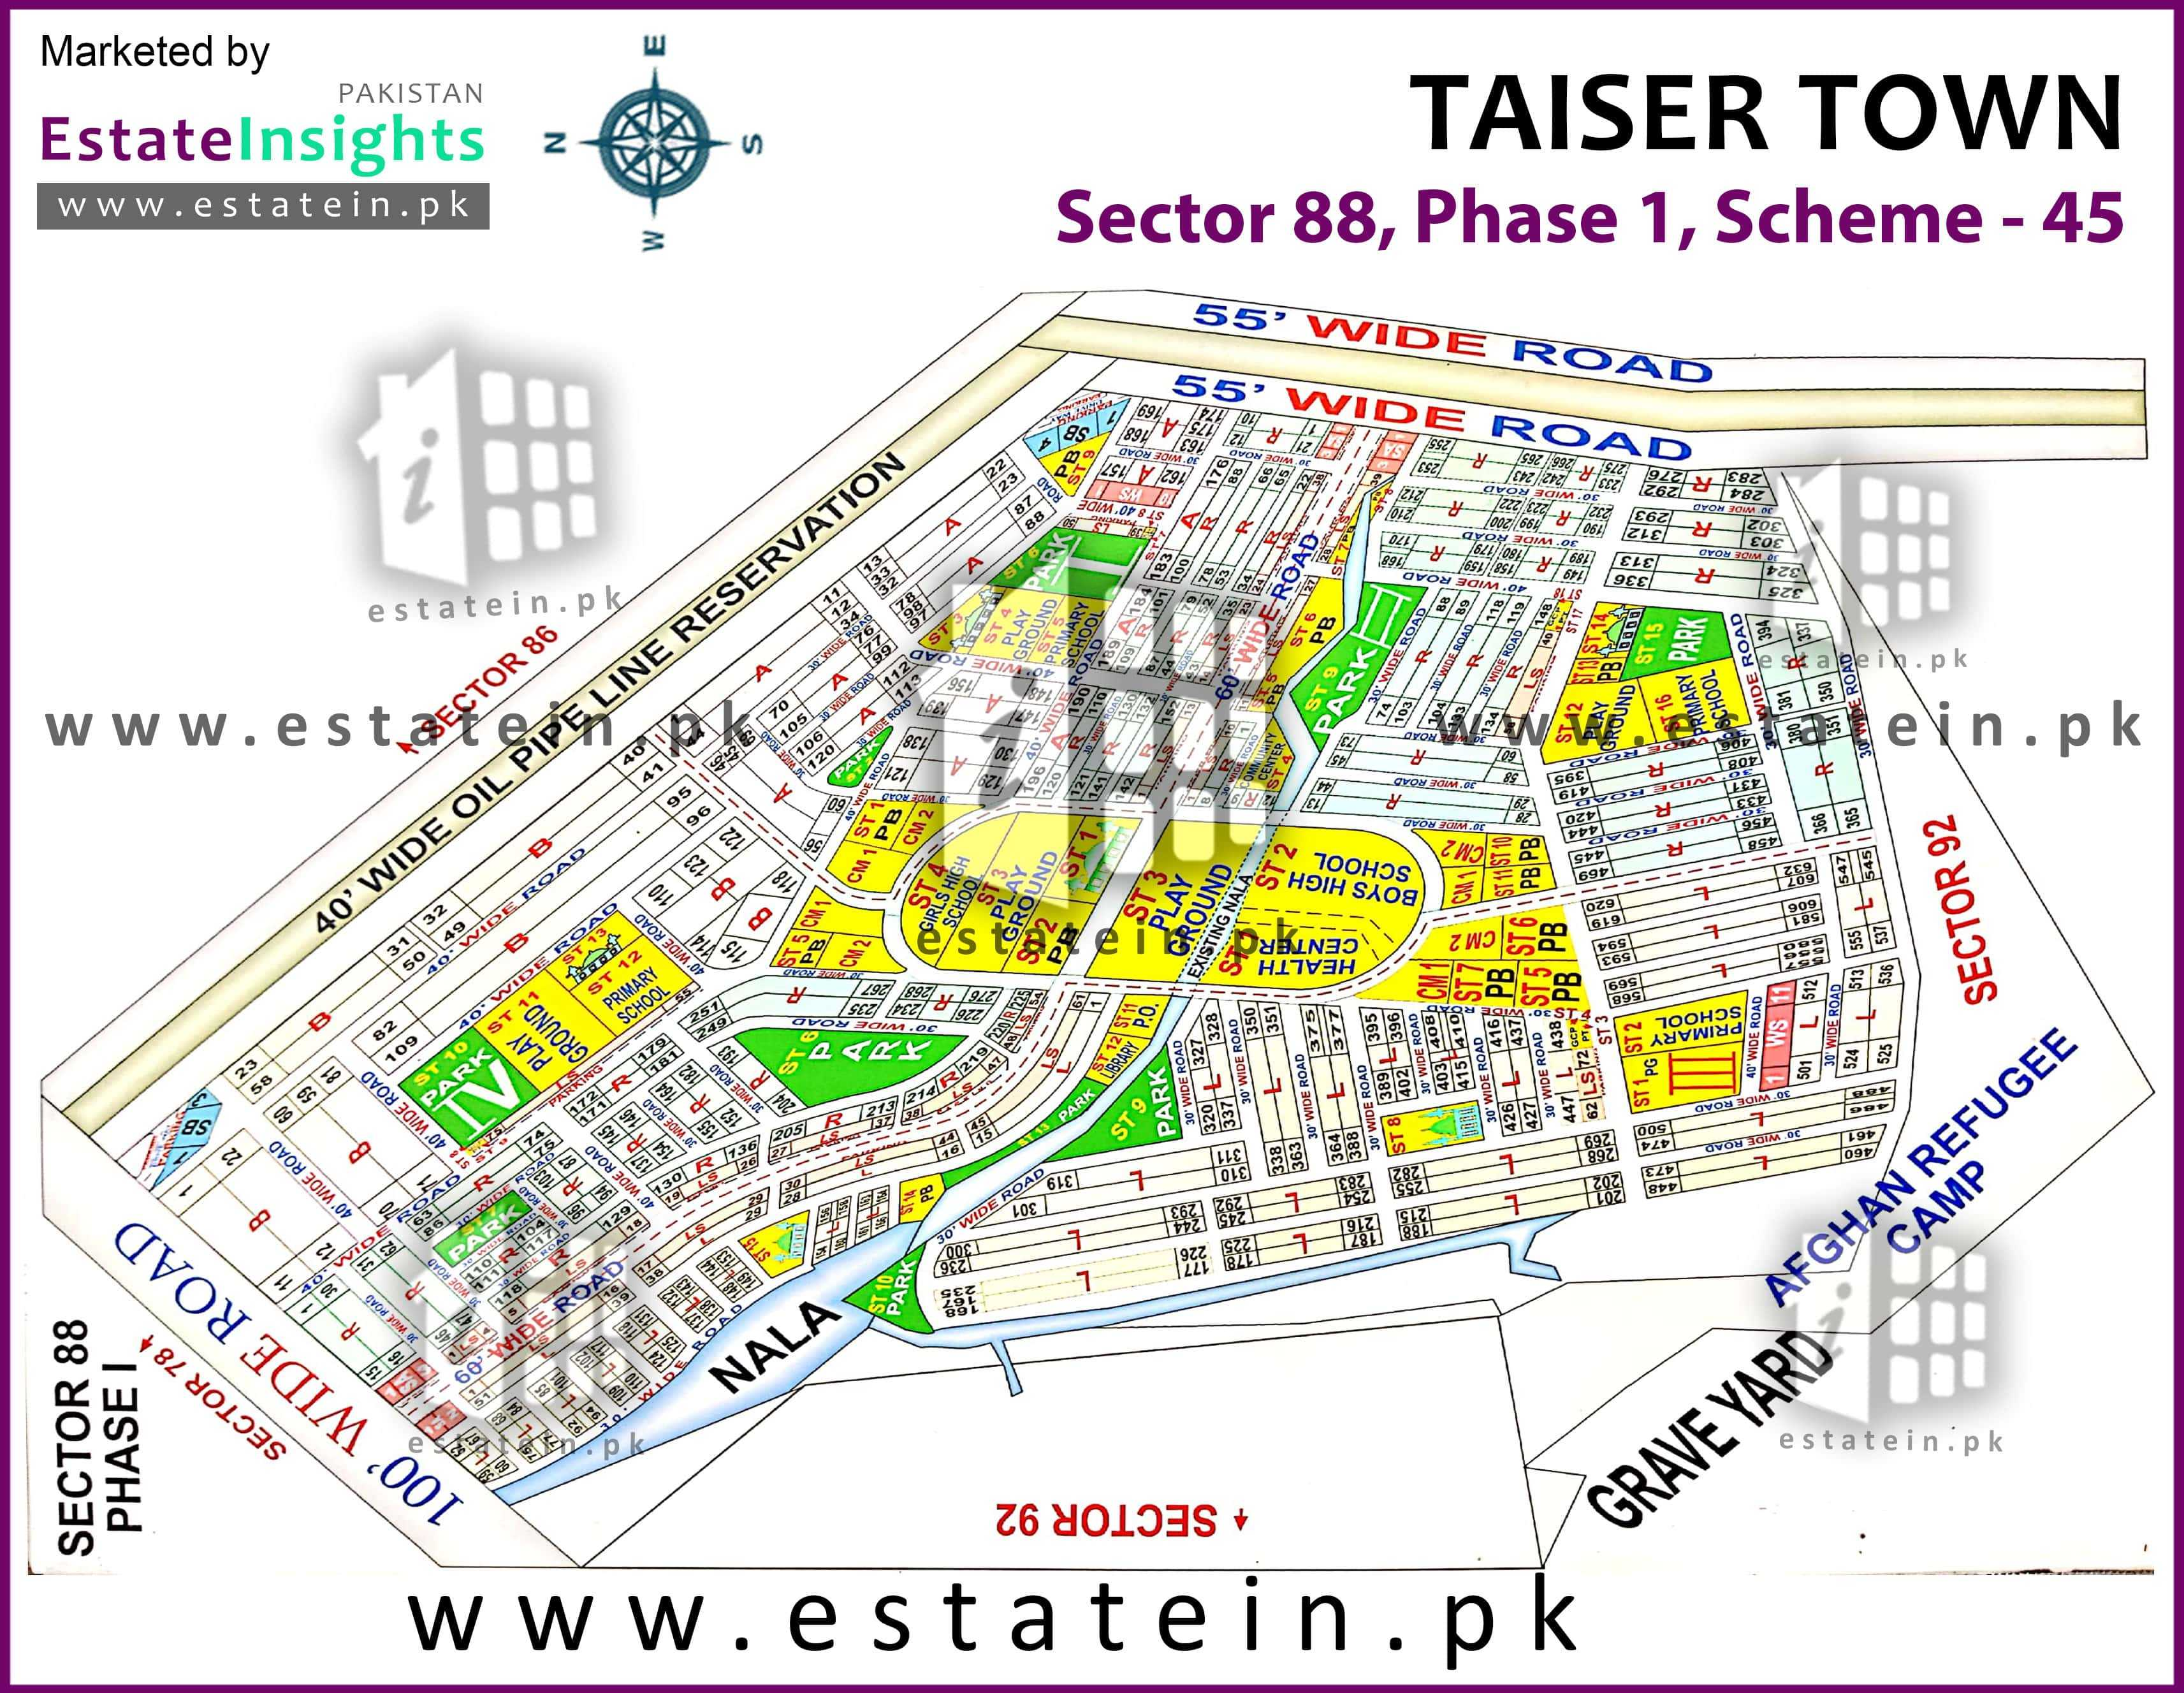 Site Plan of Sector 88 of Taiser Town Phase I